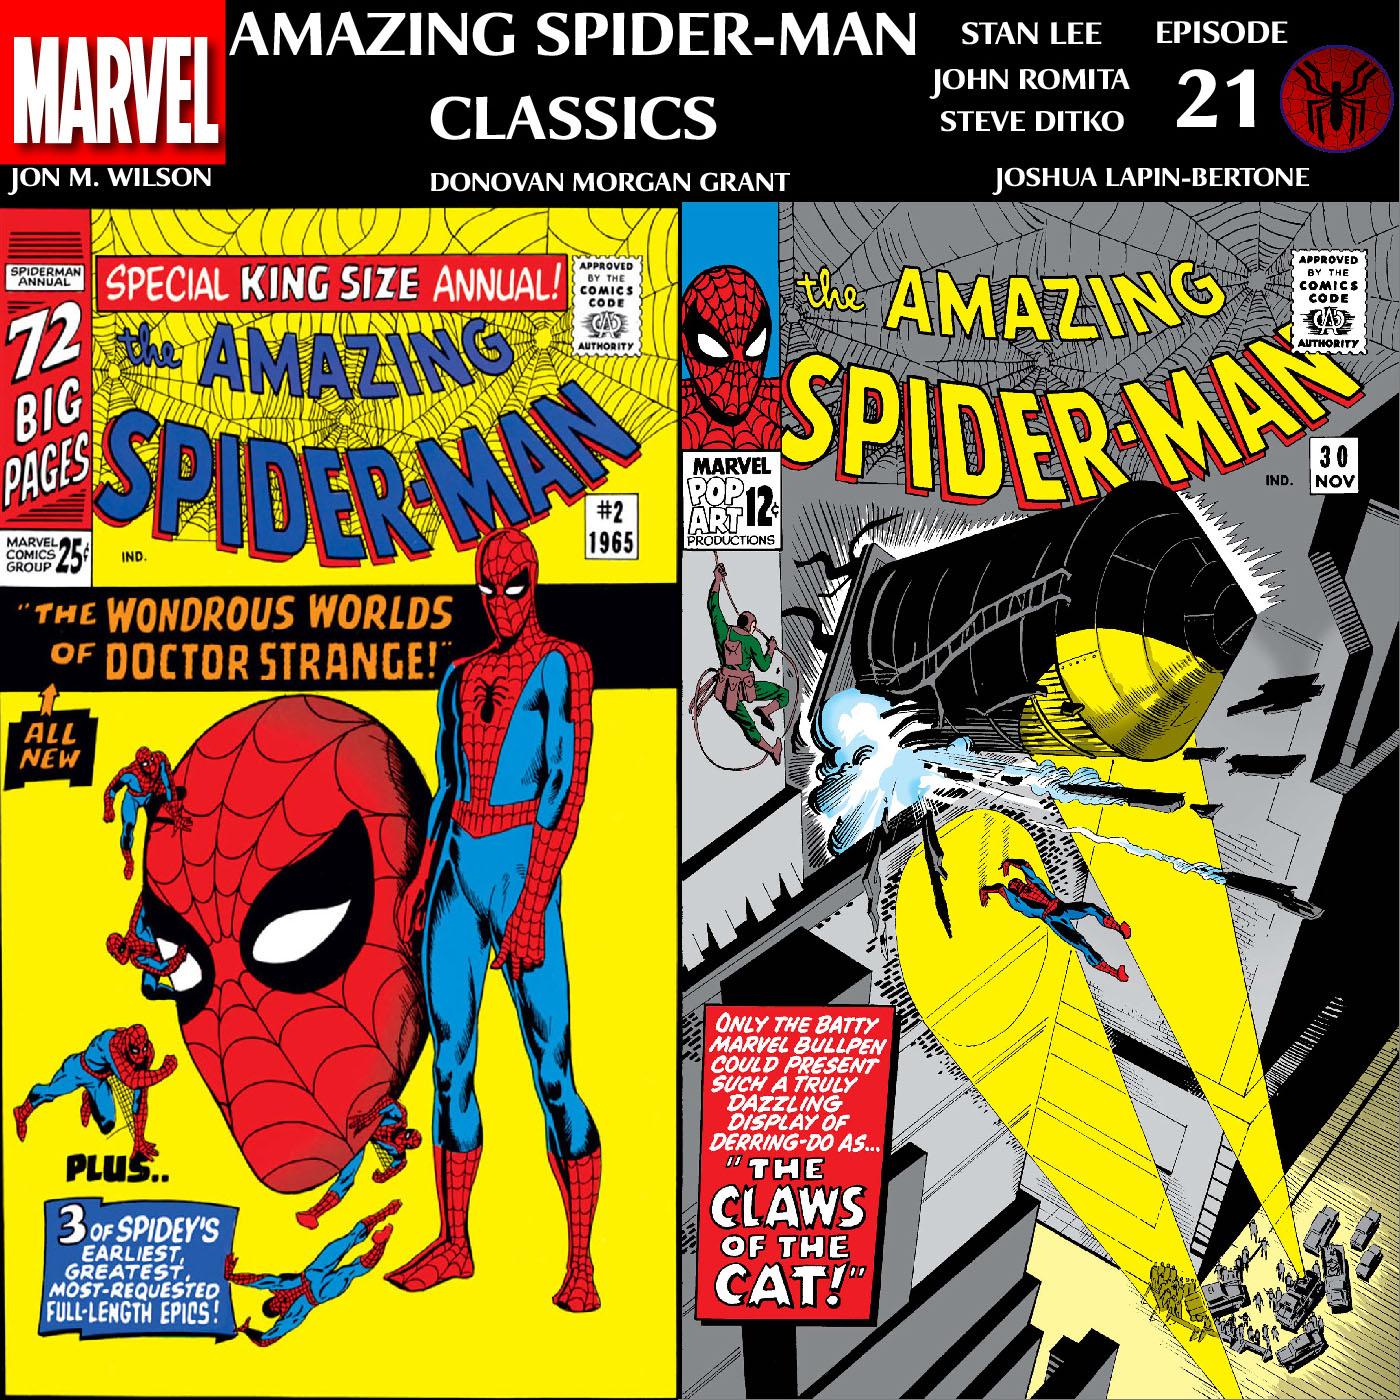 ASM Classics Episode 21: Amazing Spider-Man Annual 2 and 30